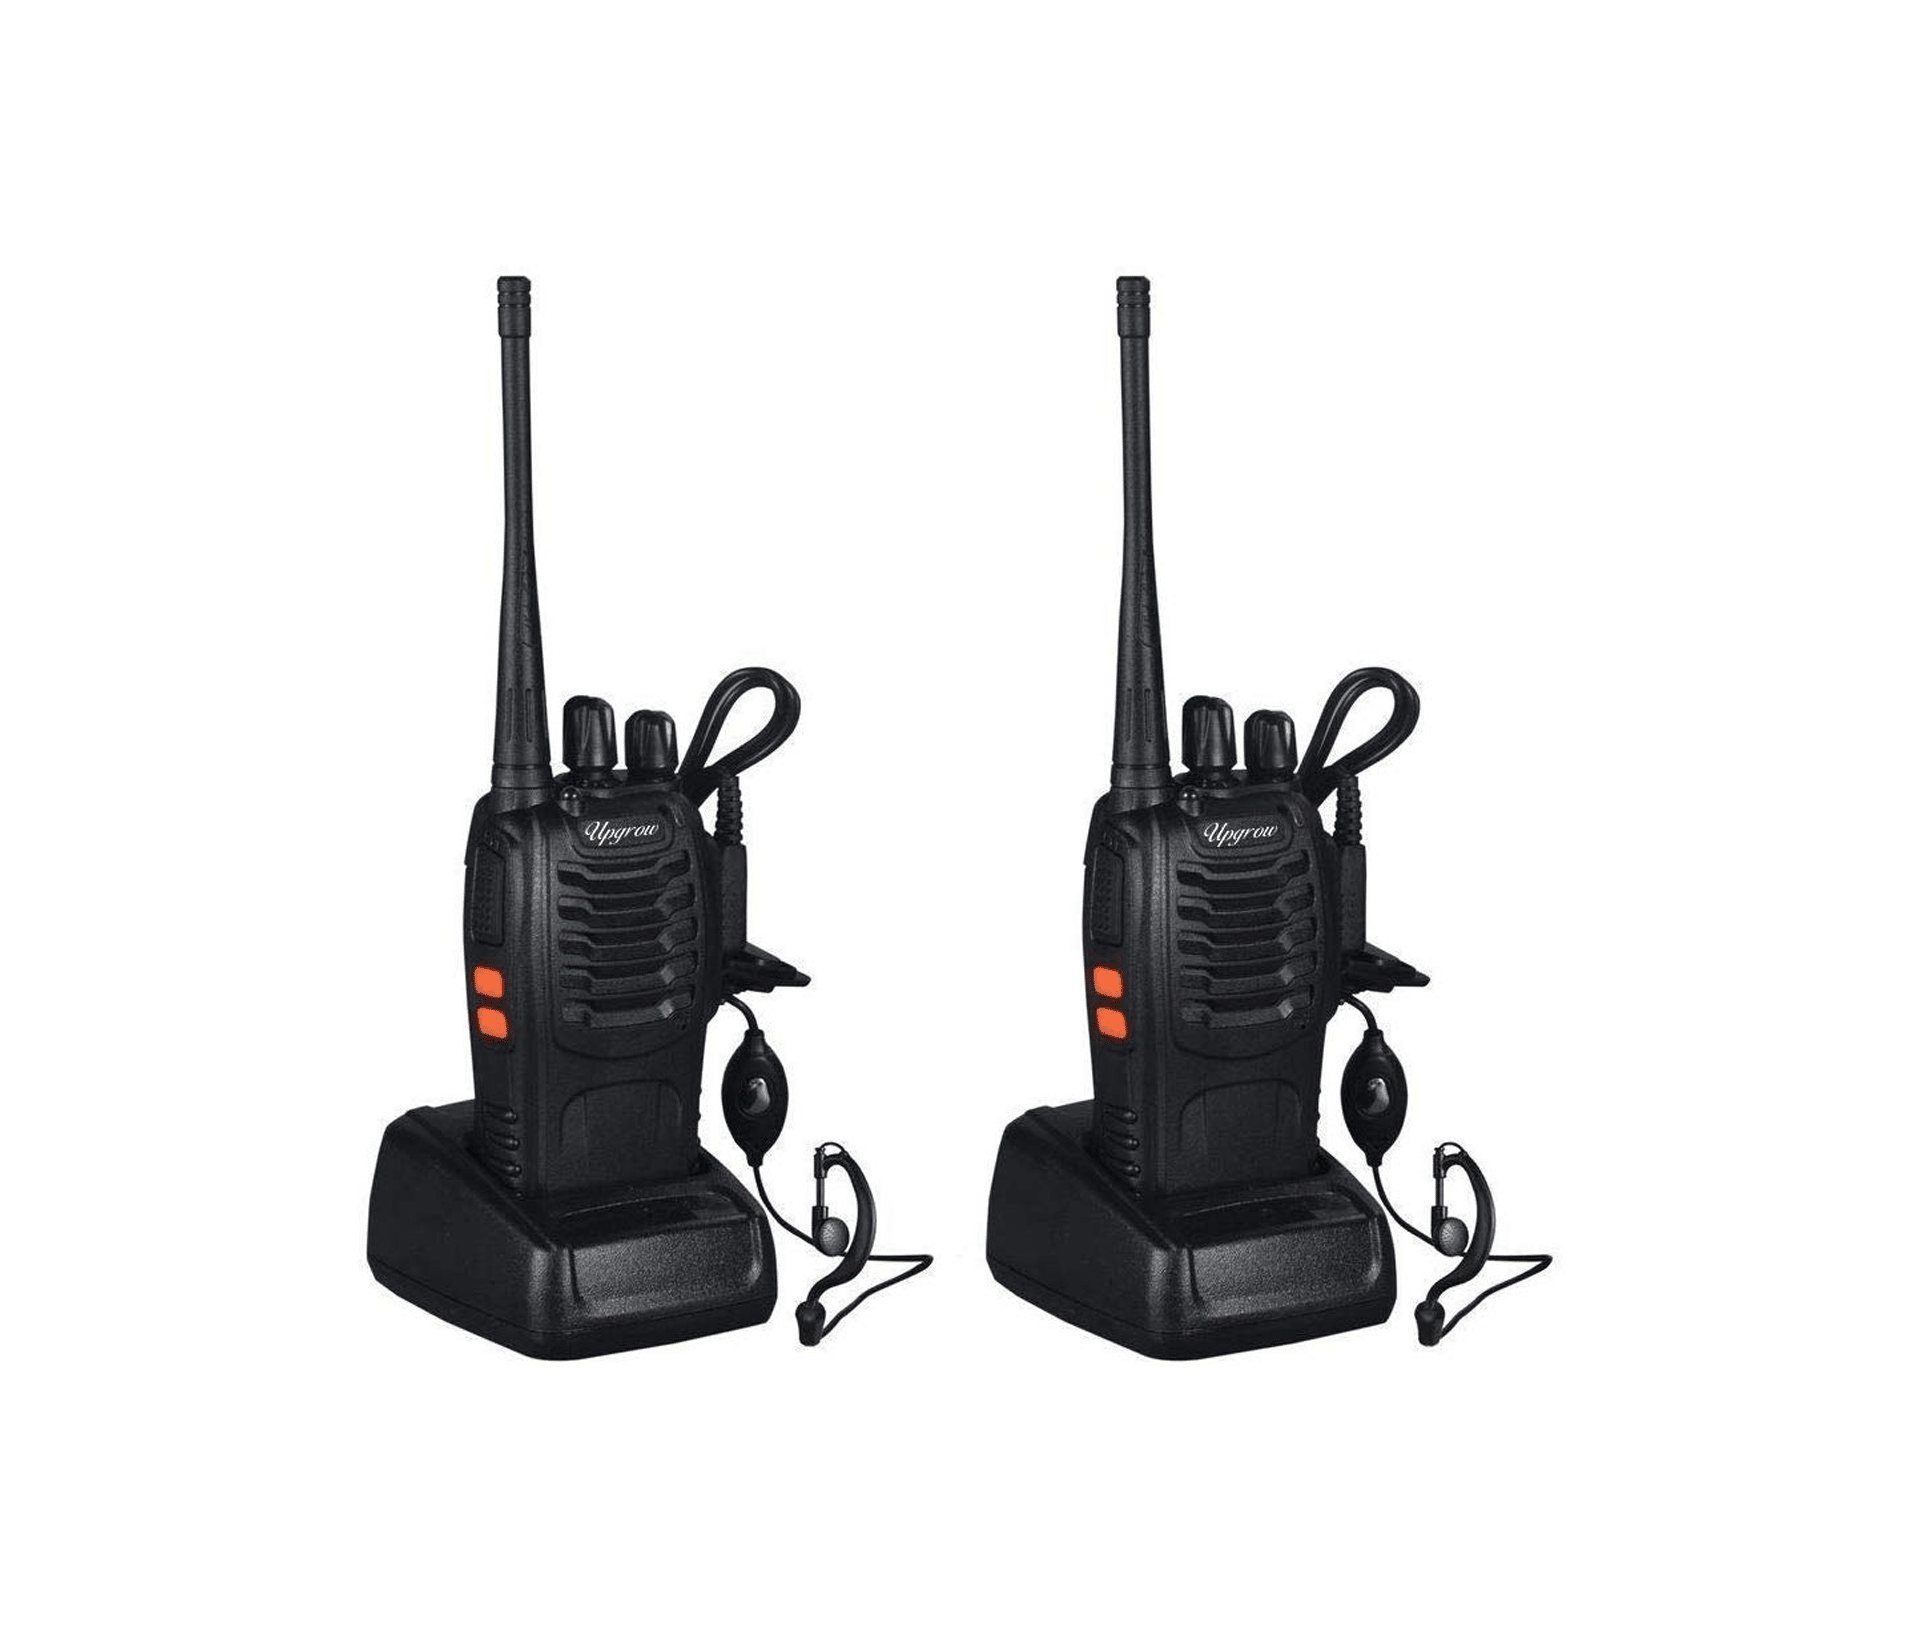 Baofeng Rechargeable Two-Way Radio